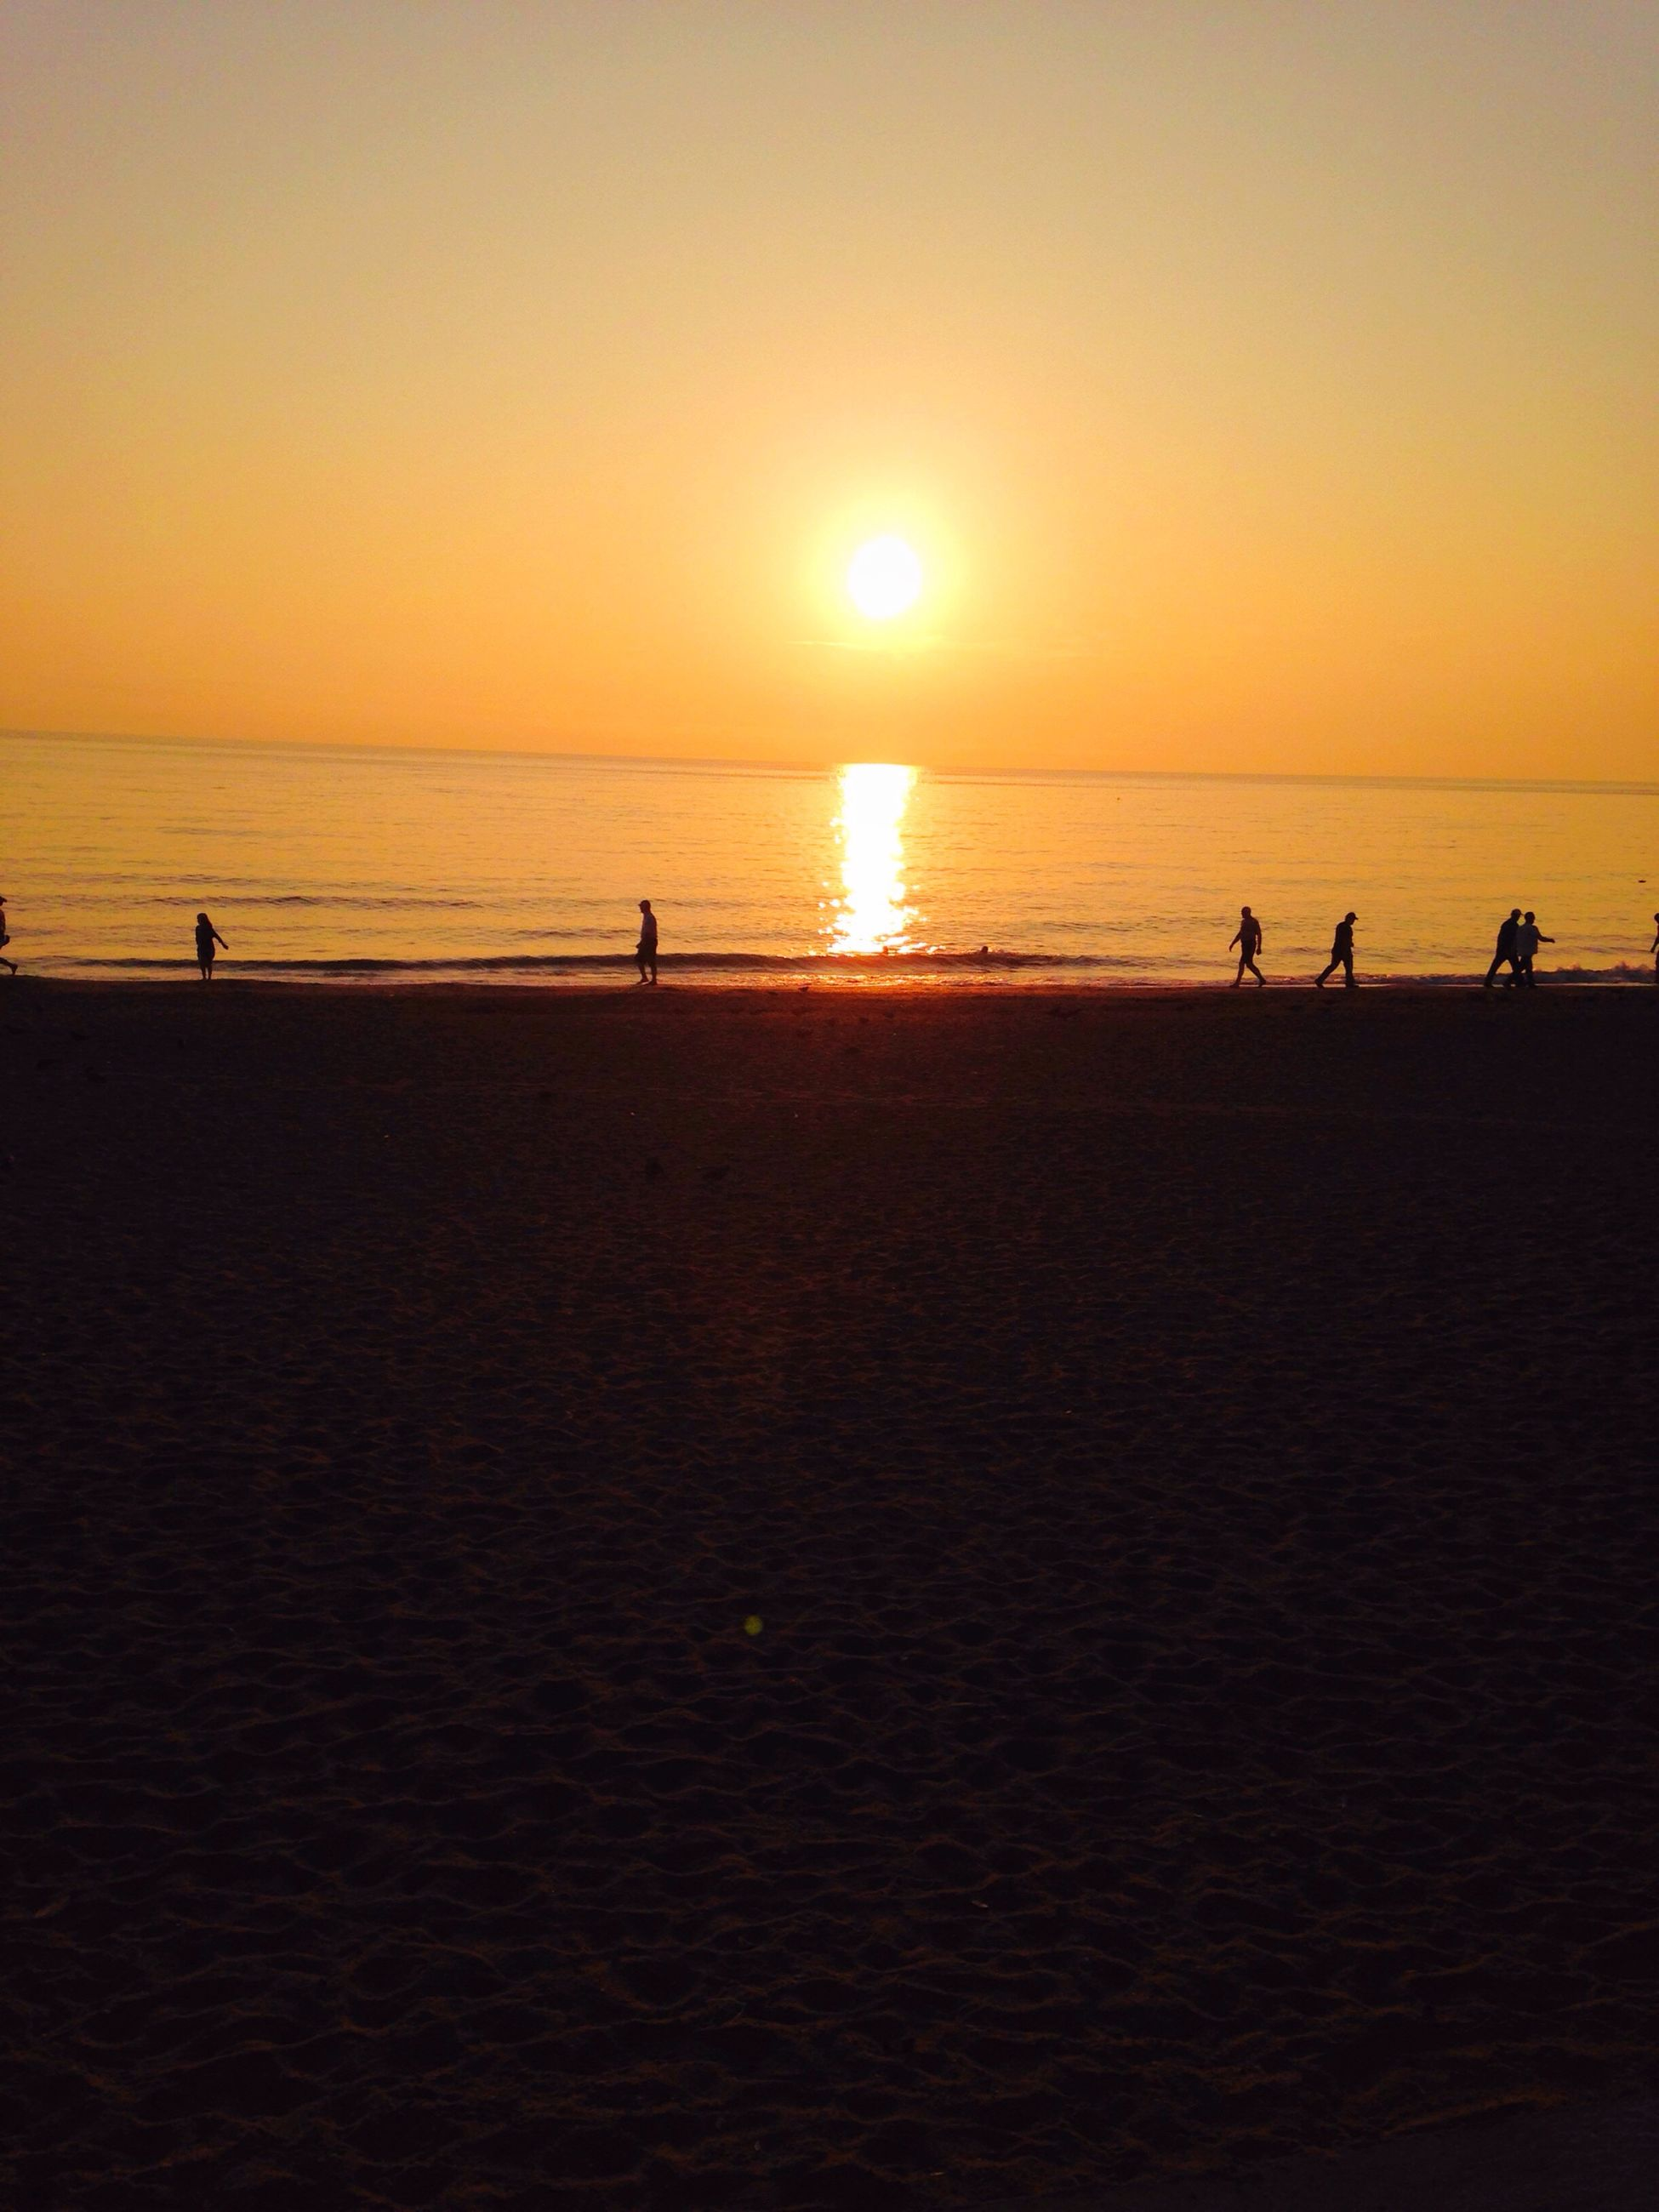 sunset, sea, water, horizon over water, beach, orange color, sun, scenics, beauty in nature, tranquil scene, shore, tranquility, idyllic, vacations, nature, leisure activity, medium group of people, unrecognizable person, sky, tourist, lifestyles, tourism, outdoors, coastline, mixed age range, travel destinations, enjoyment